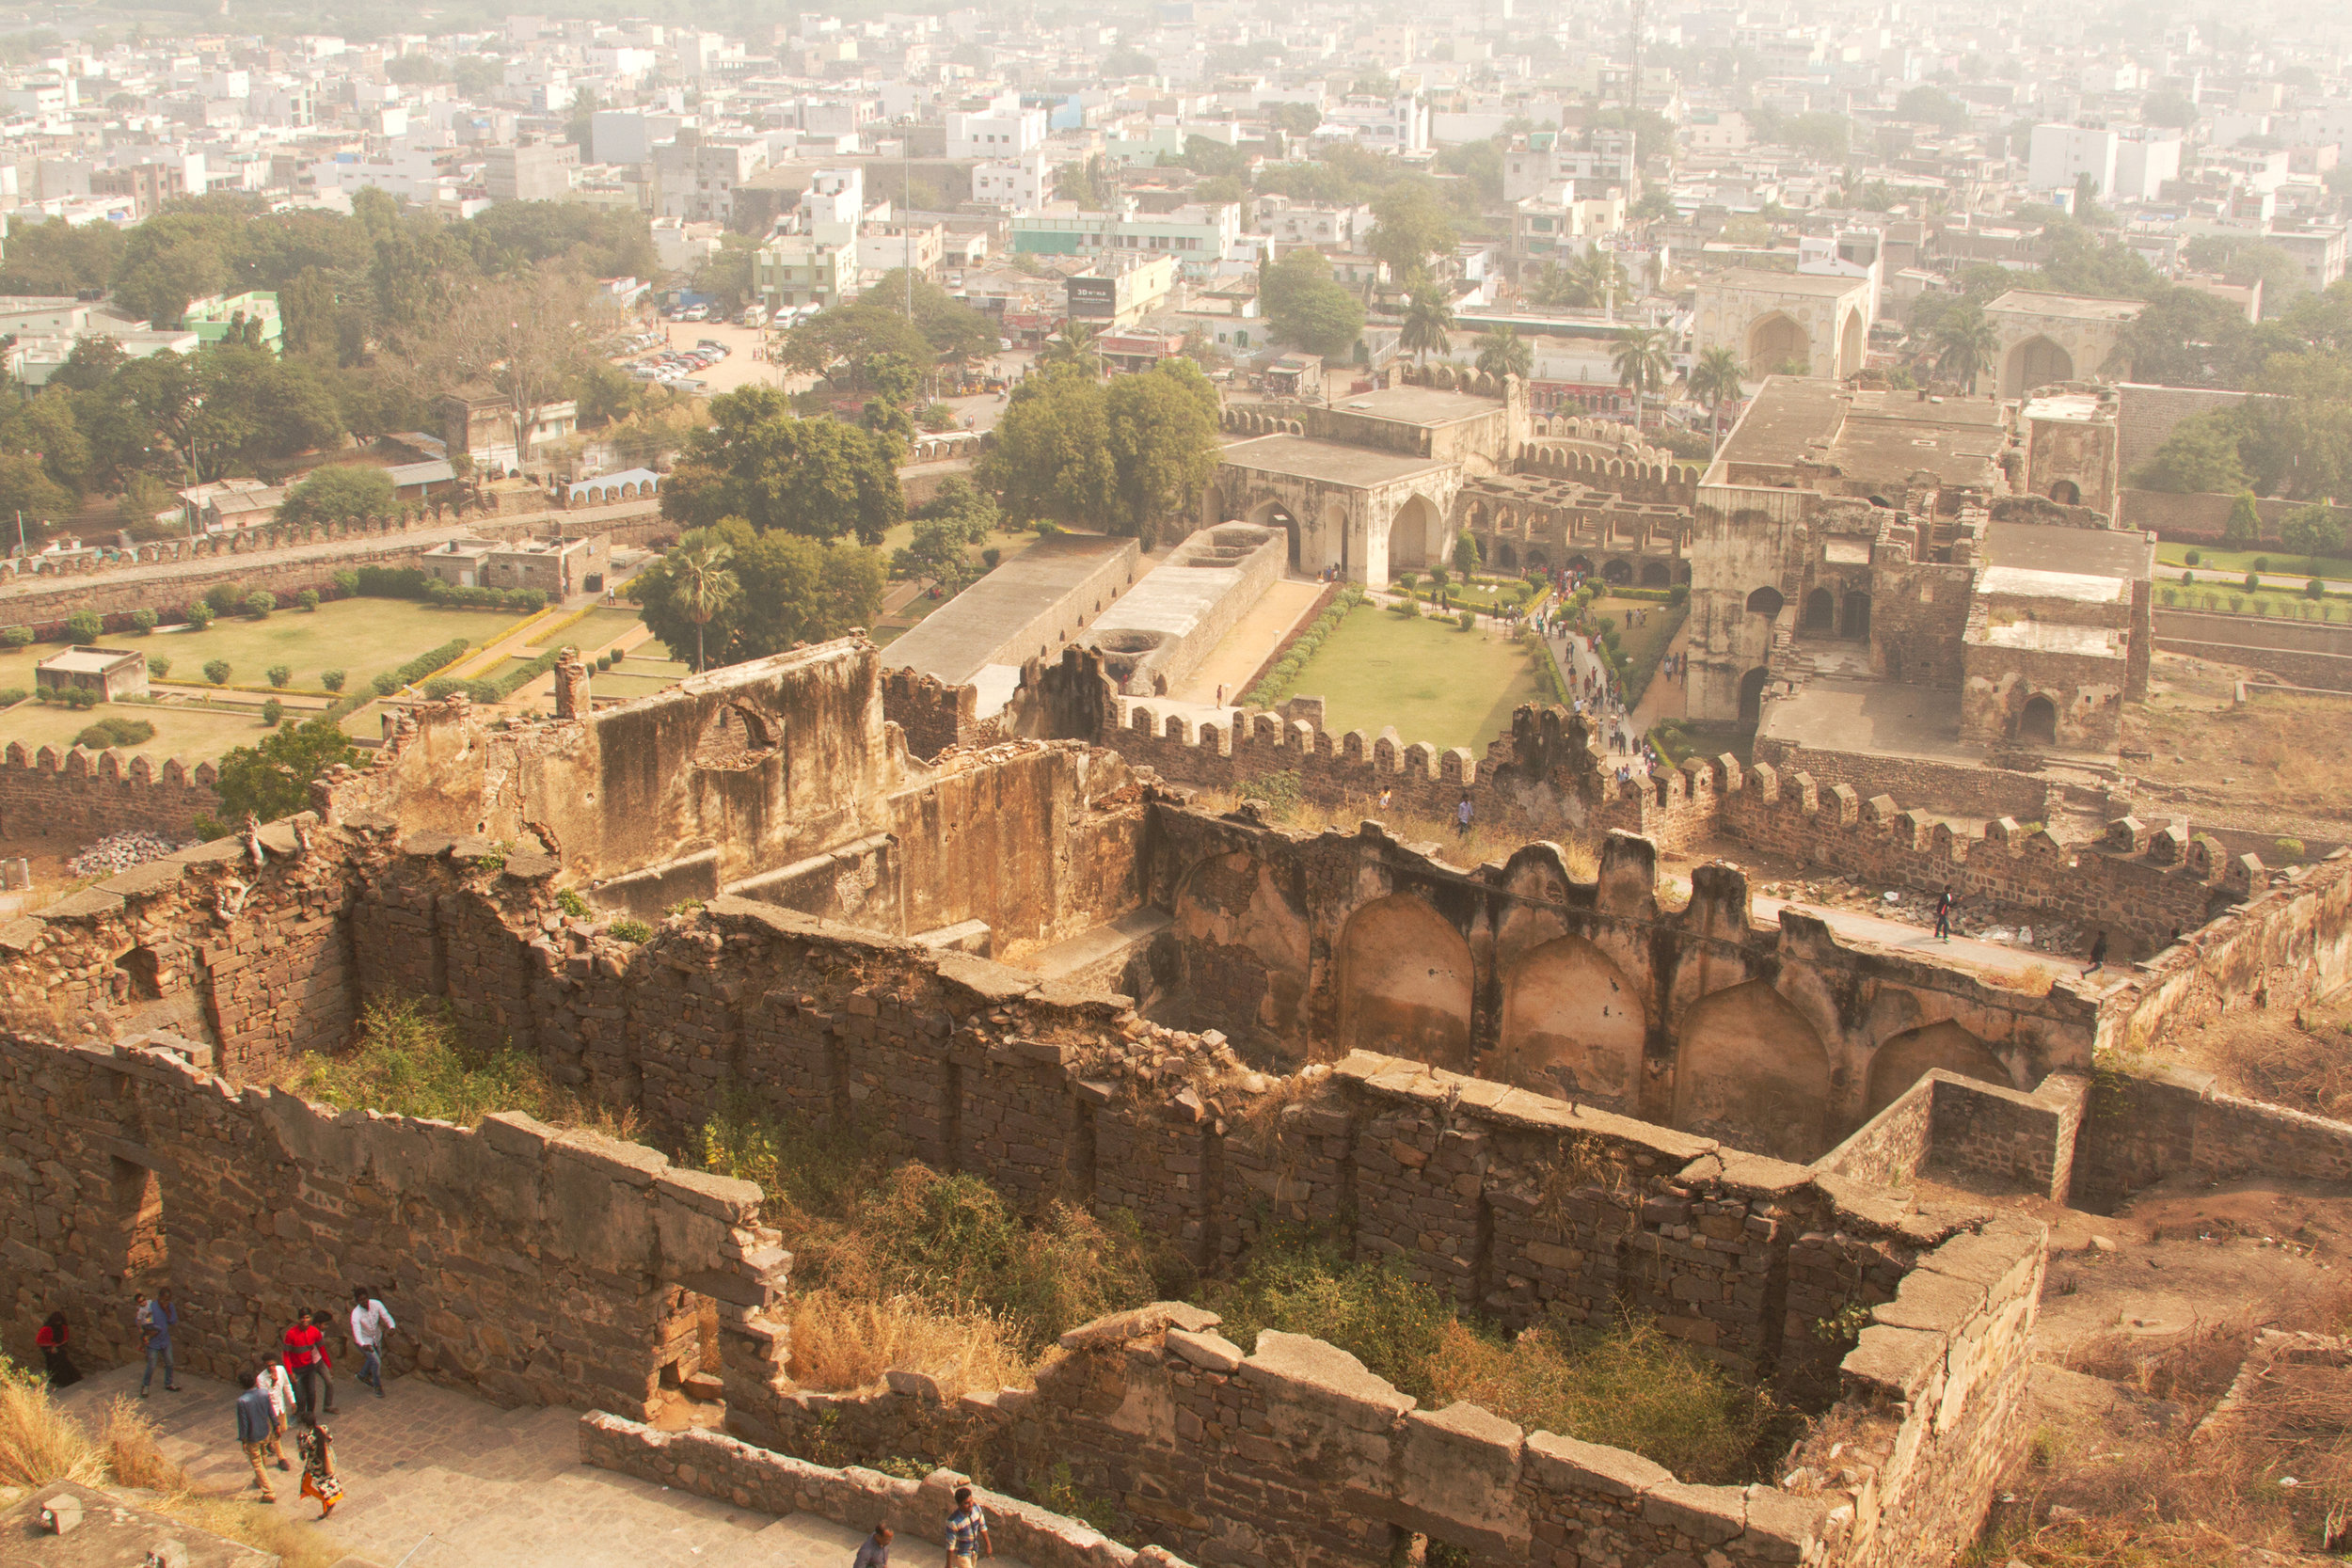 This is a view from the top (a fort was 1st constructed here in 1143), At the bottom it was a huge palace with 3 levels for the queens and concubines. (Over 2,500 women.)